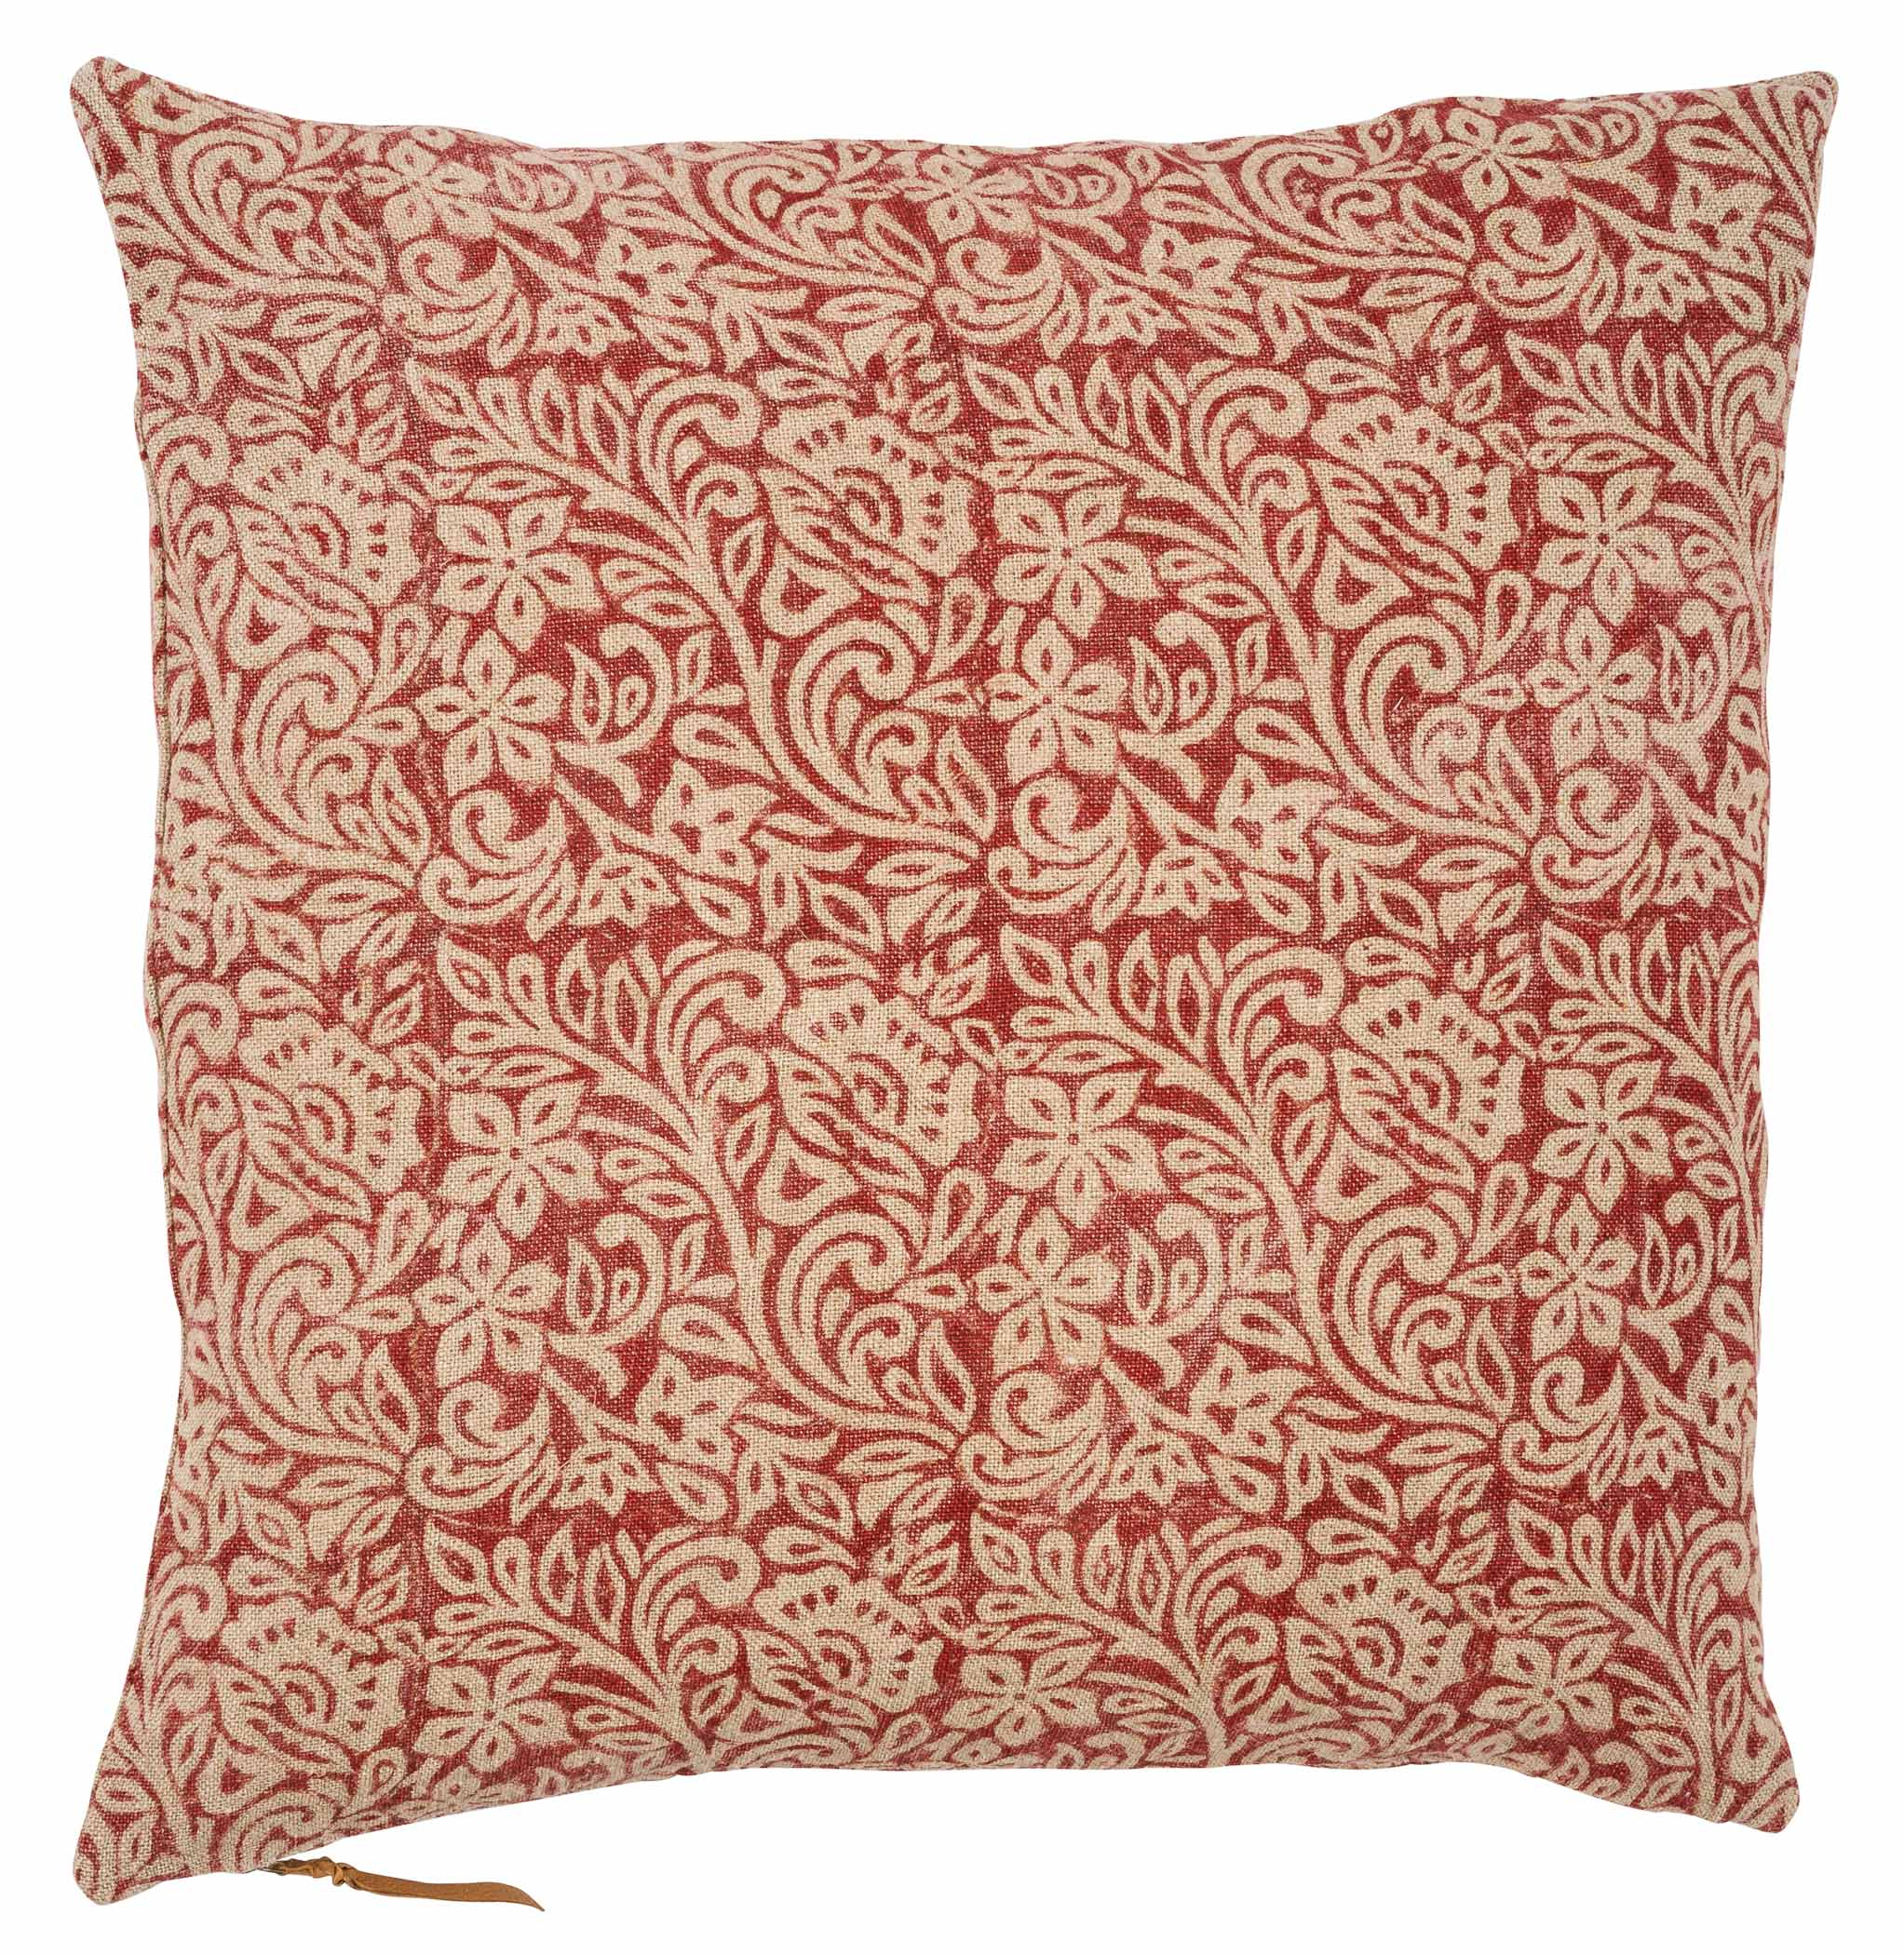 Linen Cushion with Jugend print in Red